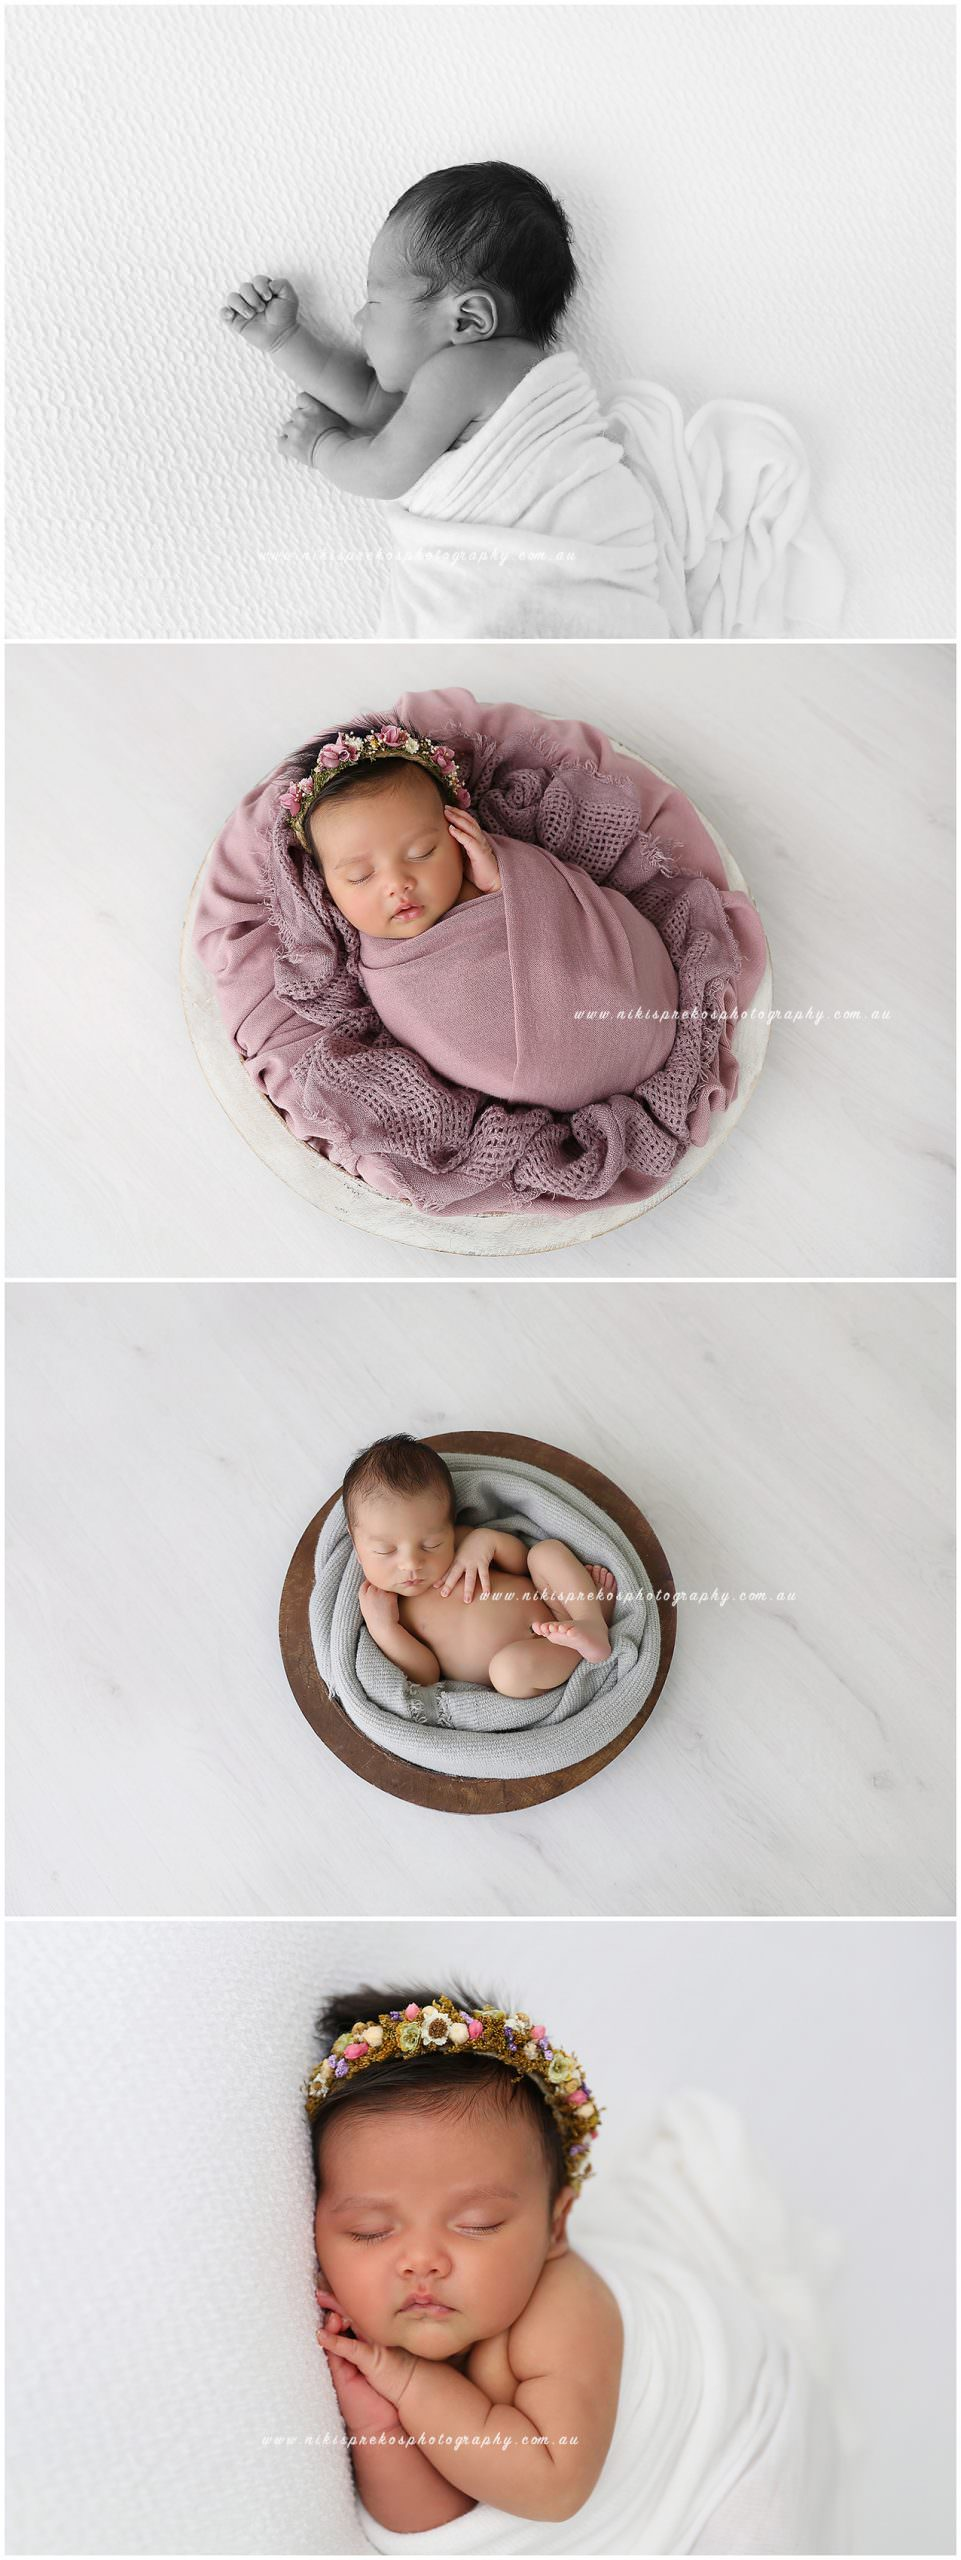 Newborn Baby Name, Most popular photographer, Niki Sprekos Photography